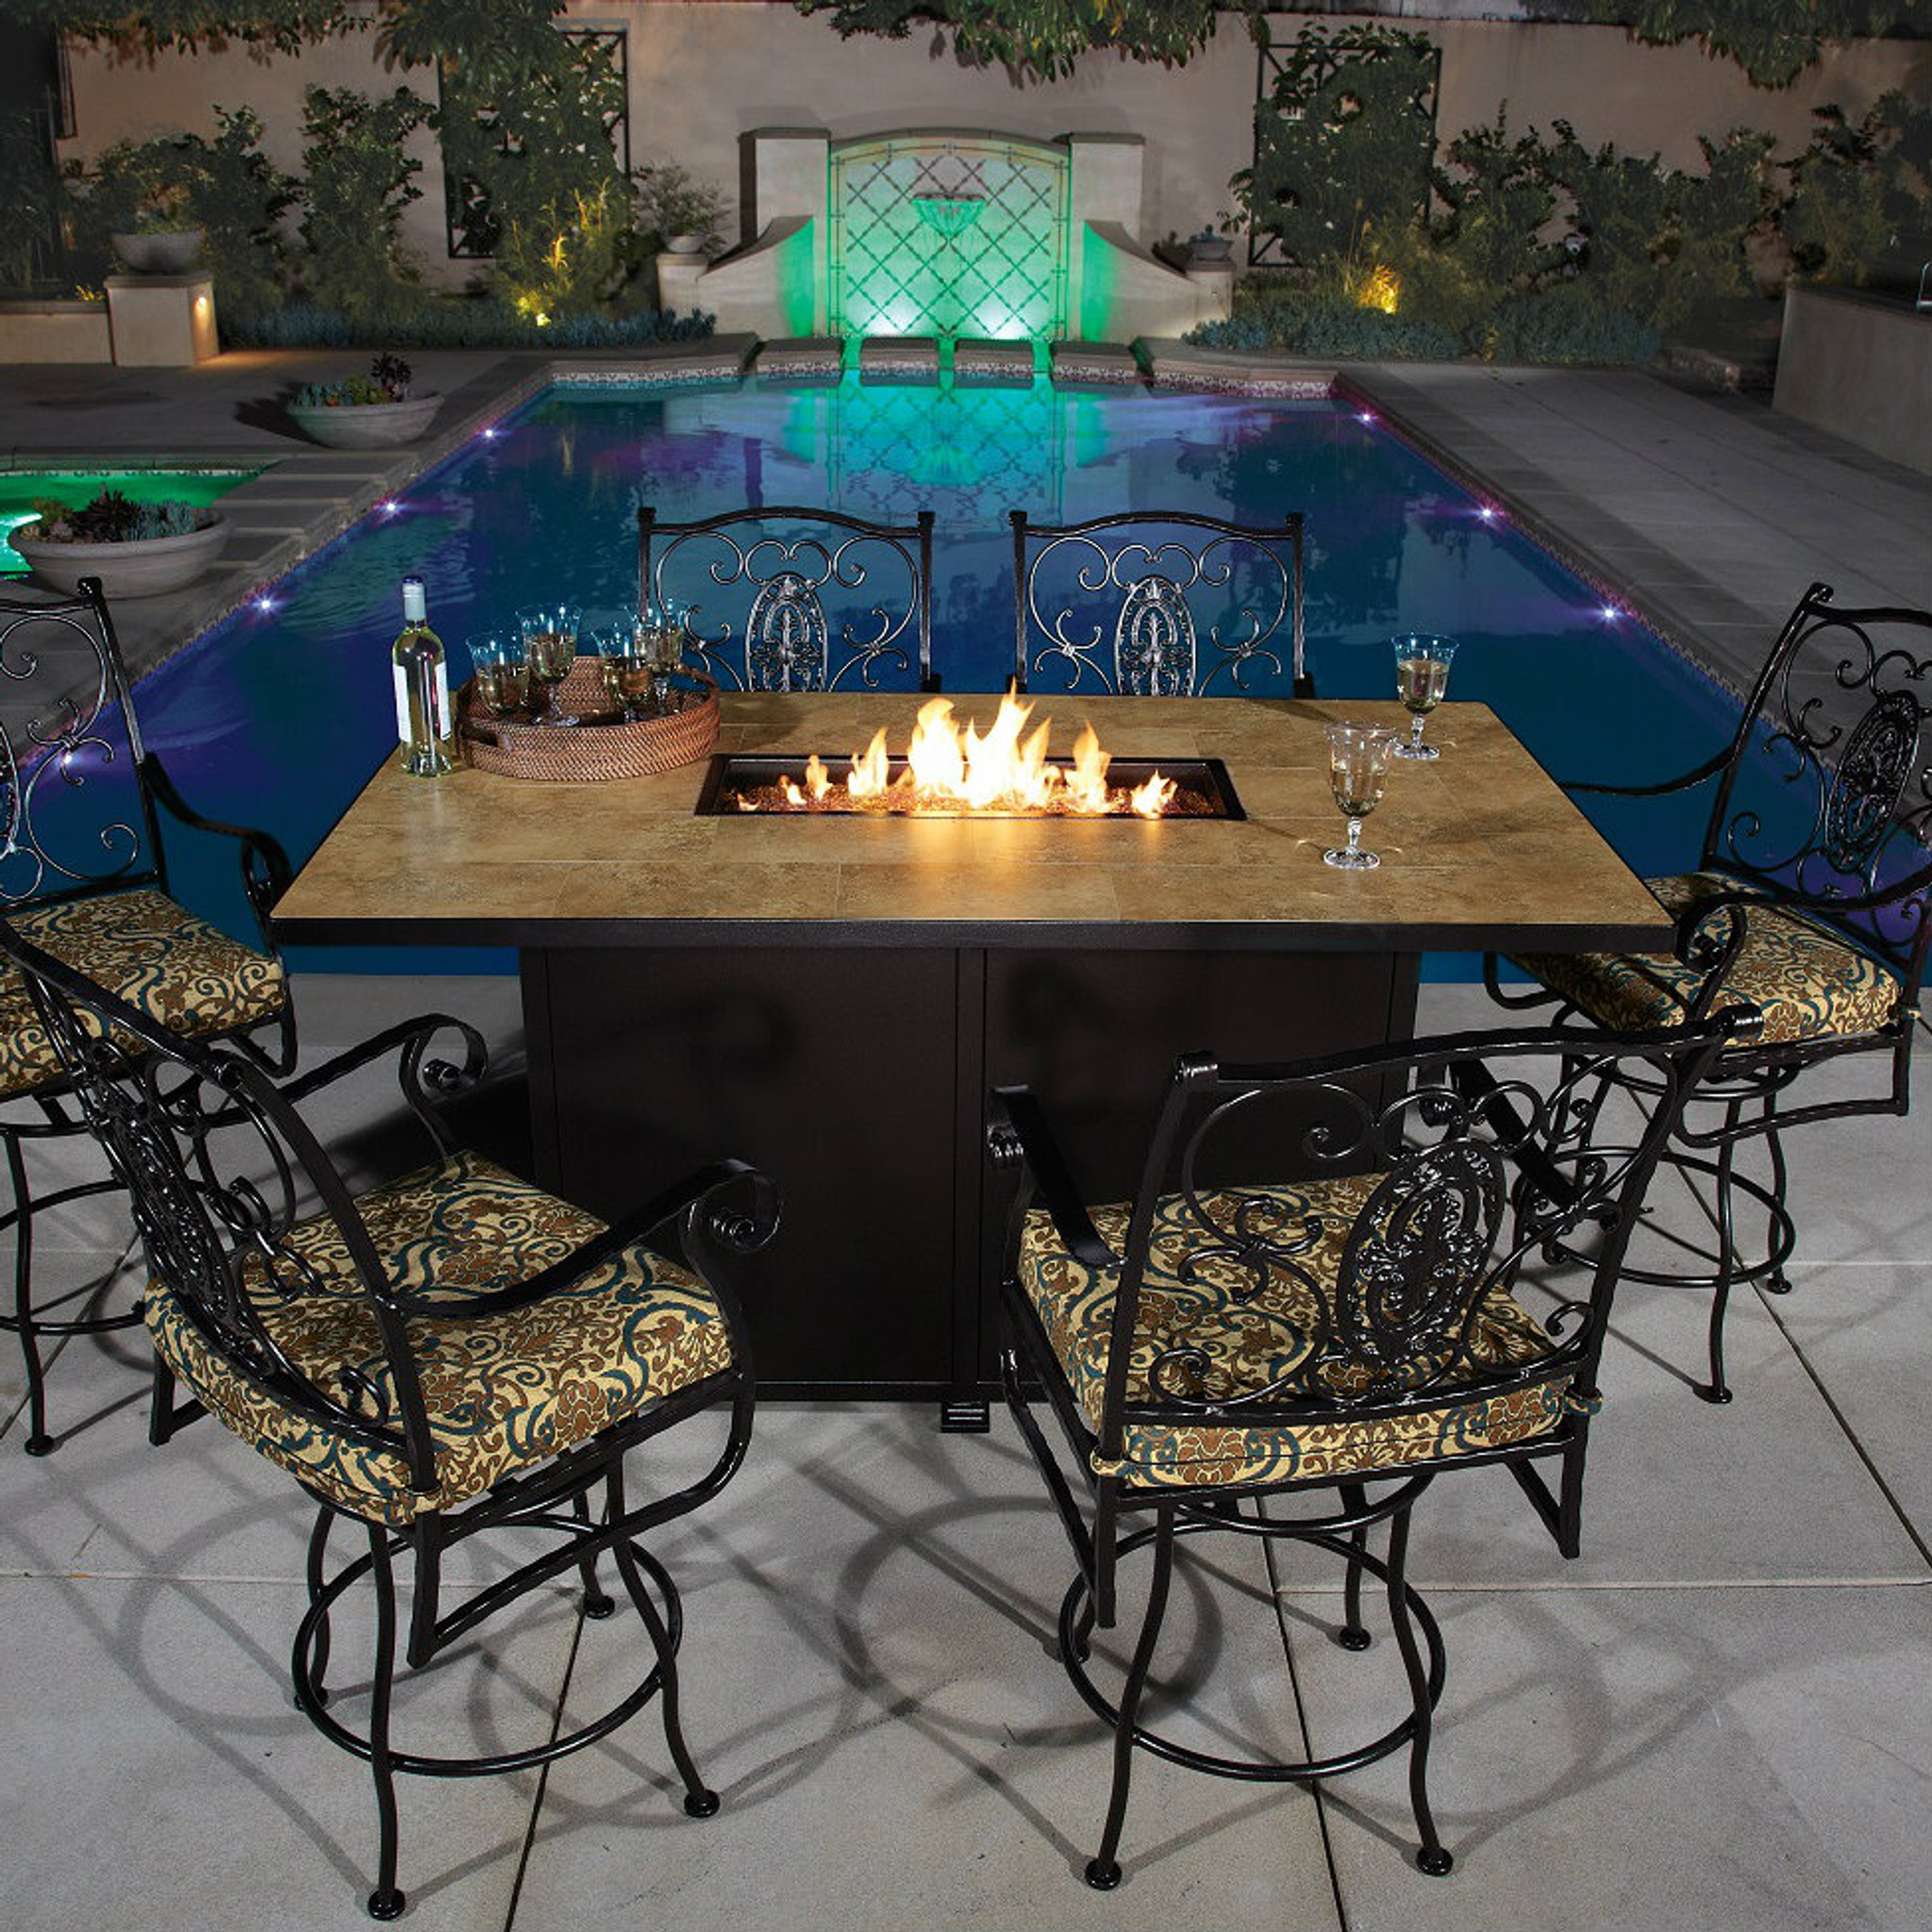 Santorini 42in X 72in Counter Height Fire Pit By Ow Lee